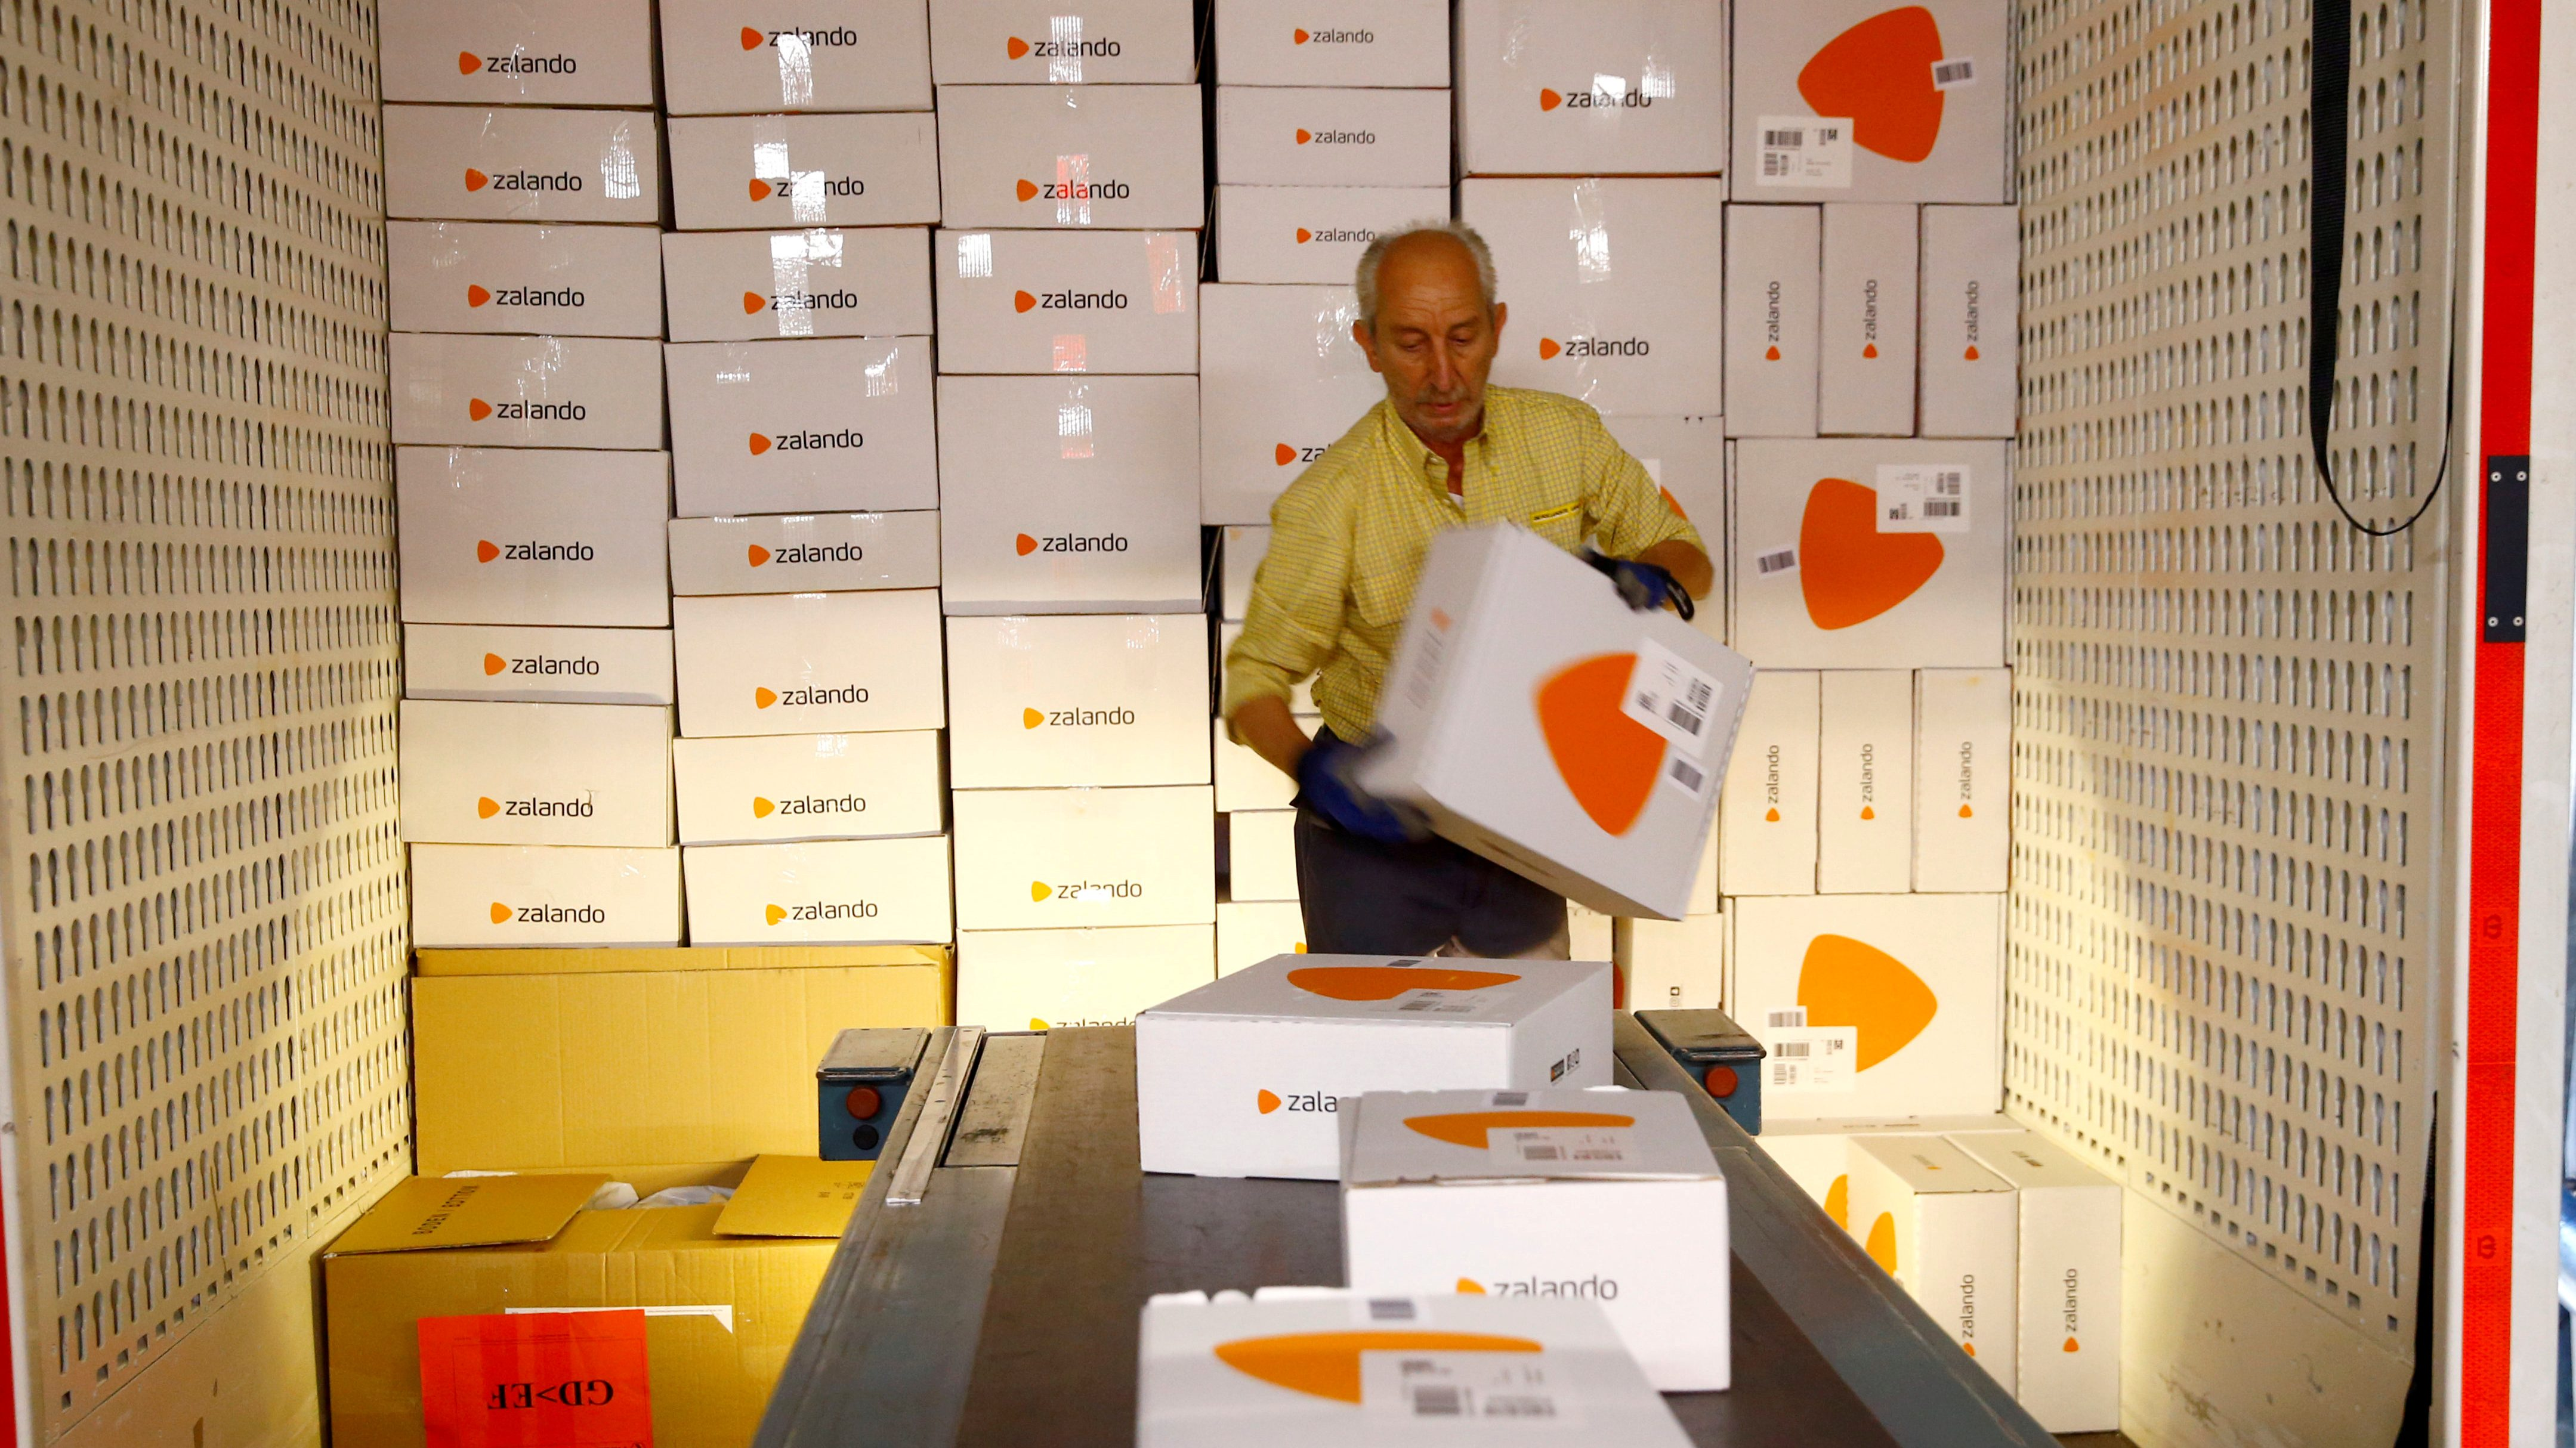 An employee places parcels of online mail order company Zalando on a conveyor